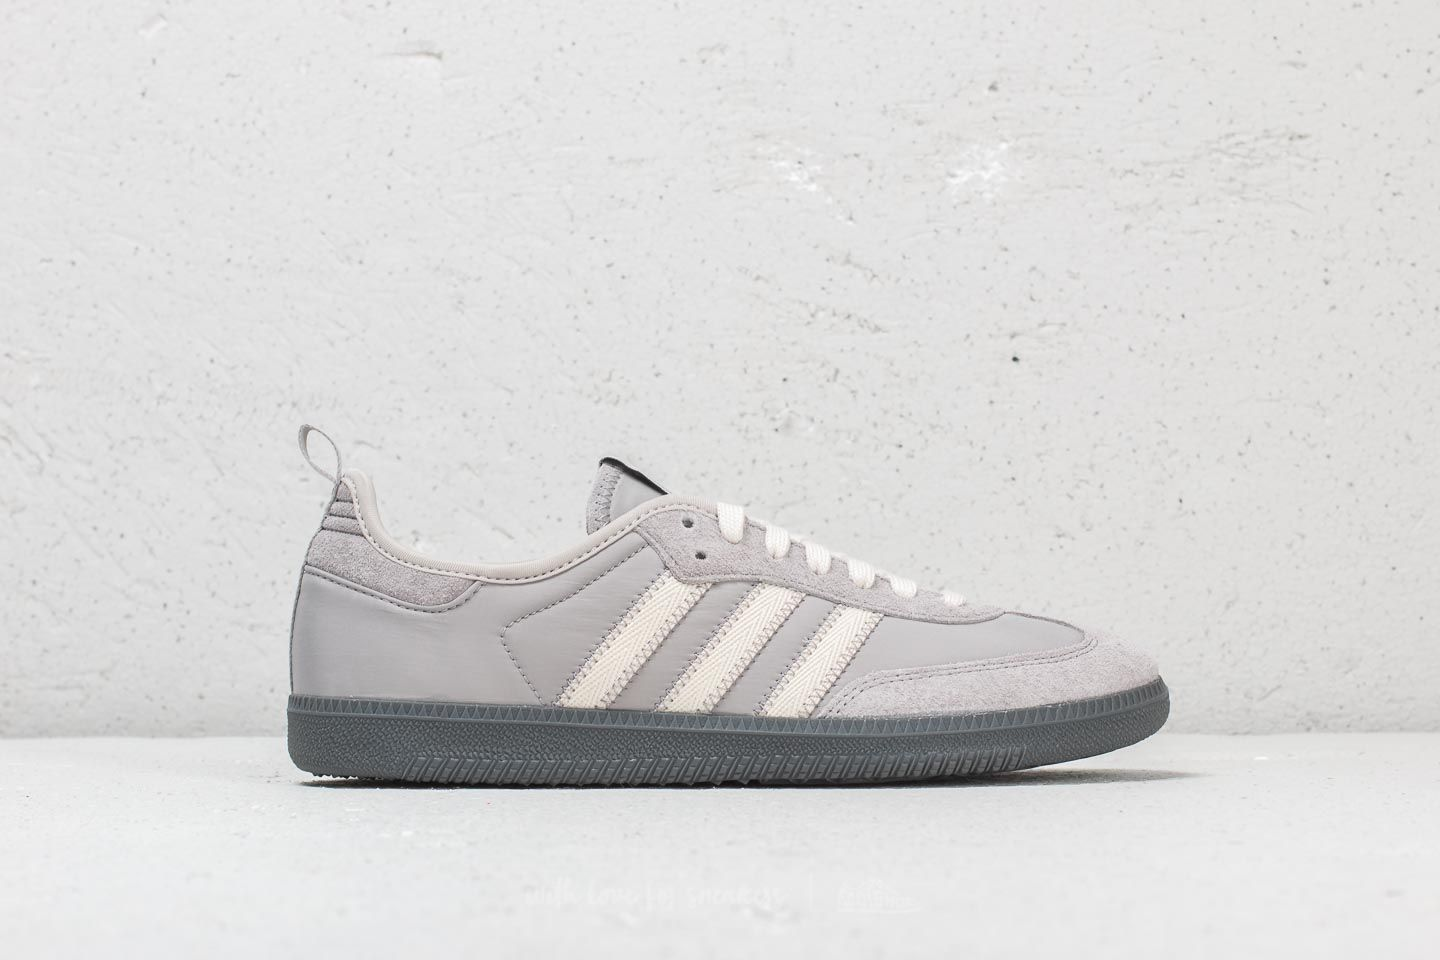 low priced 55fb7 65190 adidas x C.P. Company Samba Clear Granite/ Off White/ Off ...